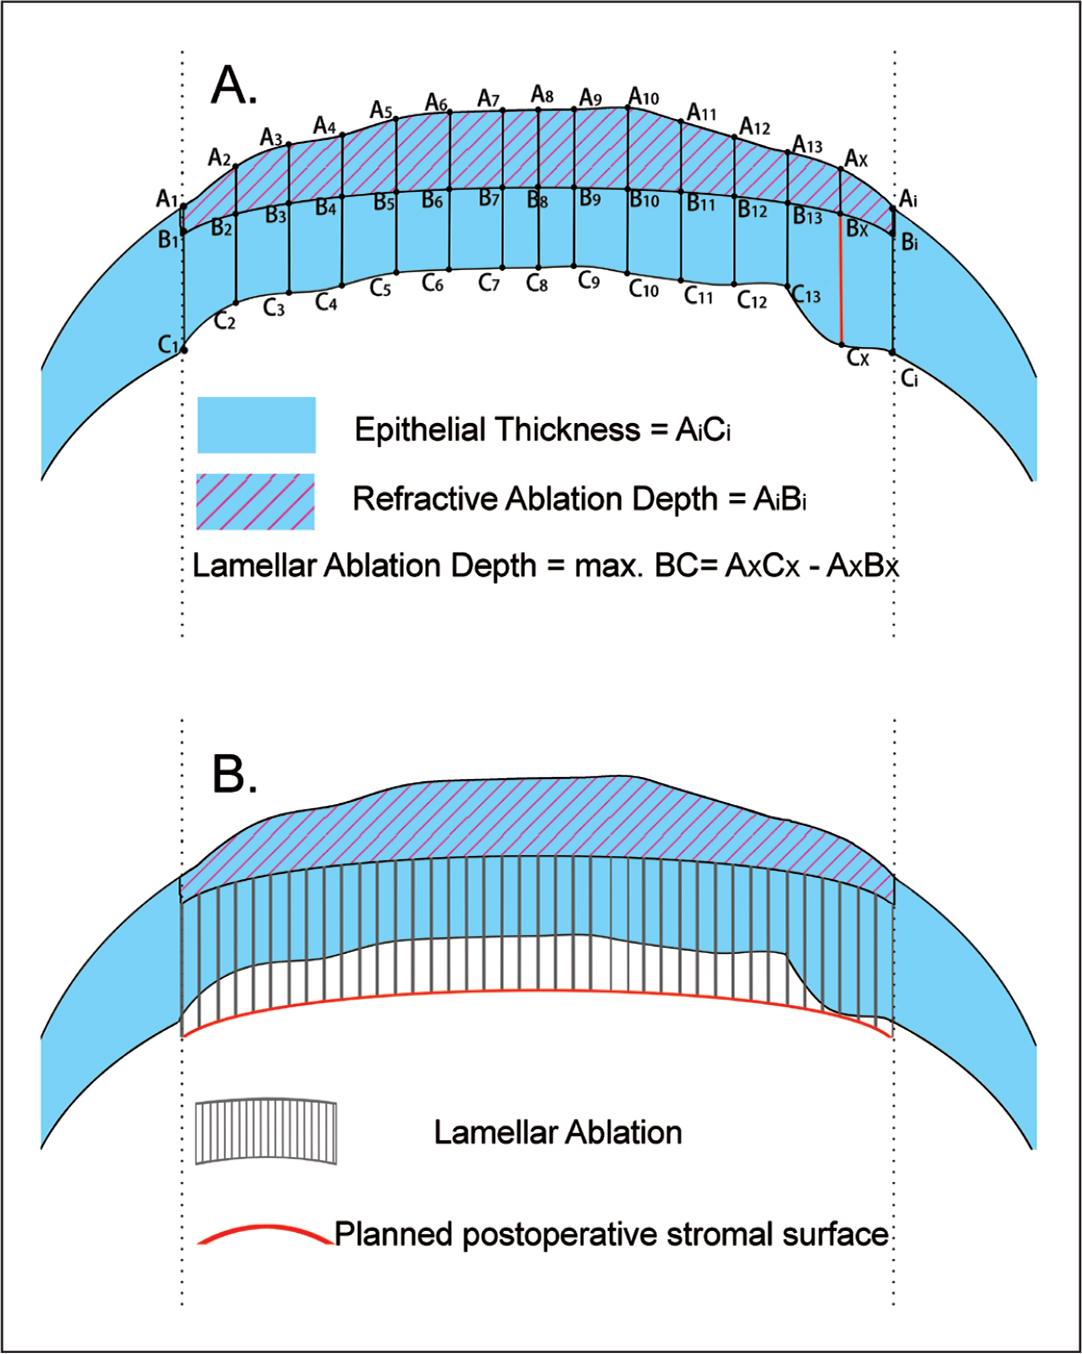 Schematic drawing illustrating the process of programing of the lamellar ablation depth. (A) Irregular epithelial thickness profile after primary refractive surgery derived by optical coherence tomography and refractive ablation plan profile, derived from corneal topography and patient's subjective refraction. The epithelial thickness (AiCi) and depth of ablation (AiBi) at corresponding locations are compared. At the location where the epithelial thickness exceeded the refractive ablation depth the most (shown in red line), the refractive ablation depth was subtracted from the measured epithelial thickness, giving the depth of the lamellar part of the compound ablation (max BC = AxCx − AxBx). (B) Lamellar ablation and planned postoperative stromal surface.